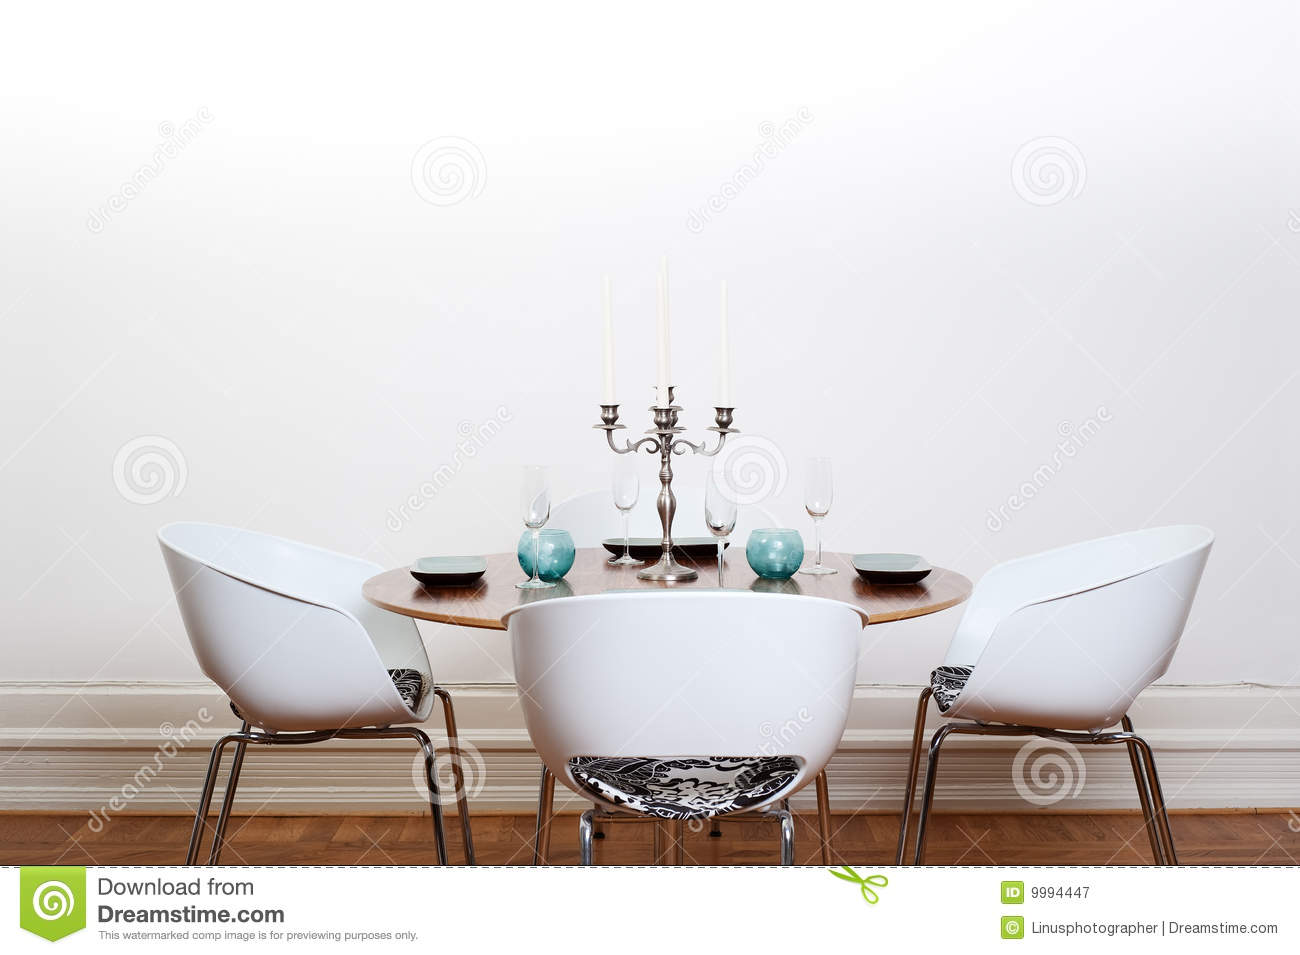 Modele Salle A Manger Table Ronde modern dining room - round table stock image - image of